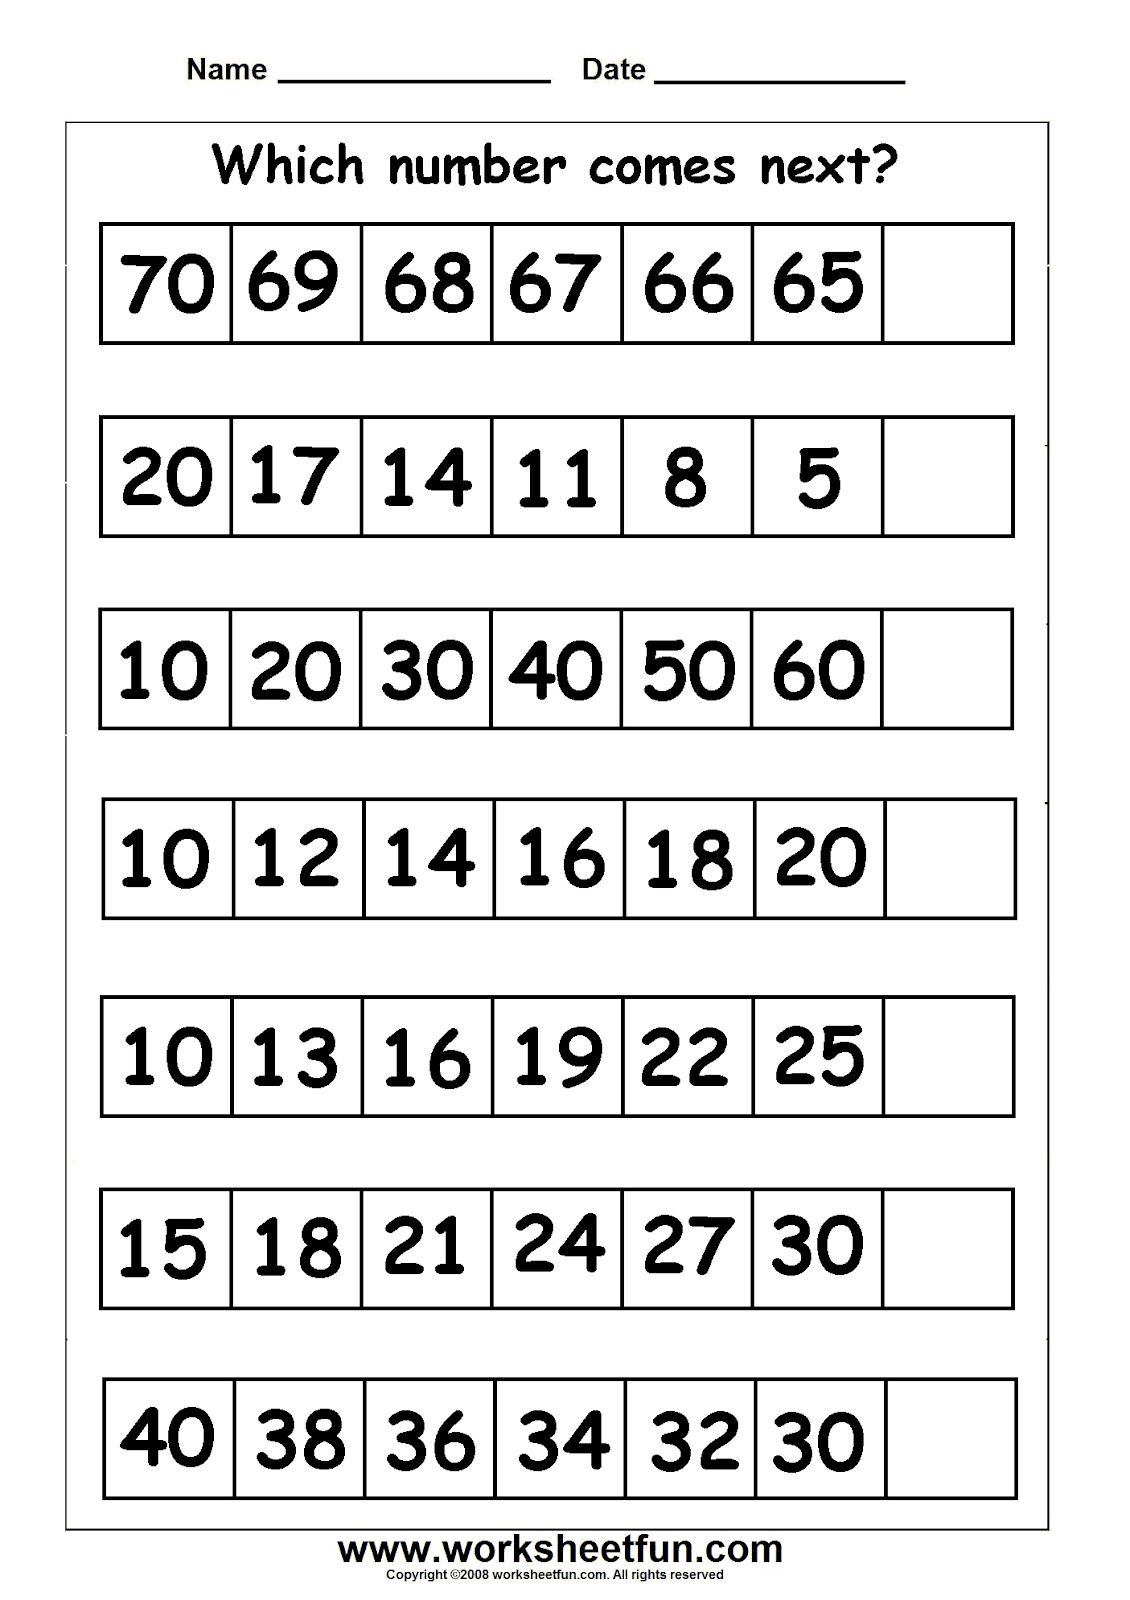 worksheet Math For First Graders first grade worksheet turn around facts fact families education 7 1 5 counting number of jumps 2 sequencing numerals 3 mathshomeschooling